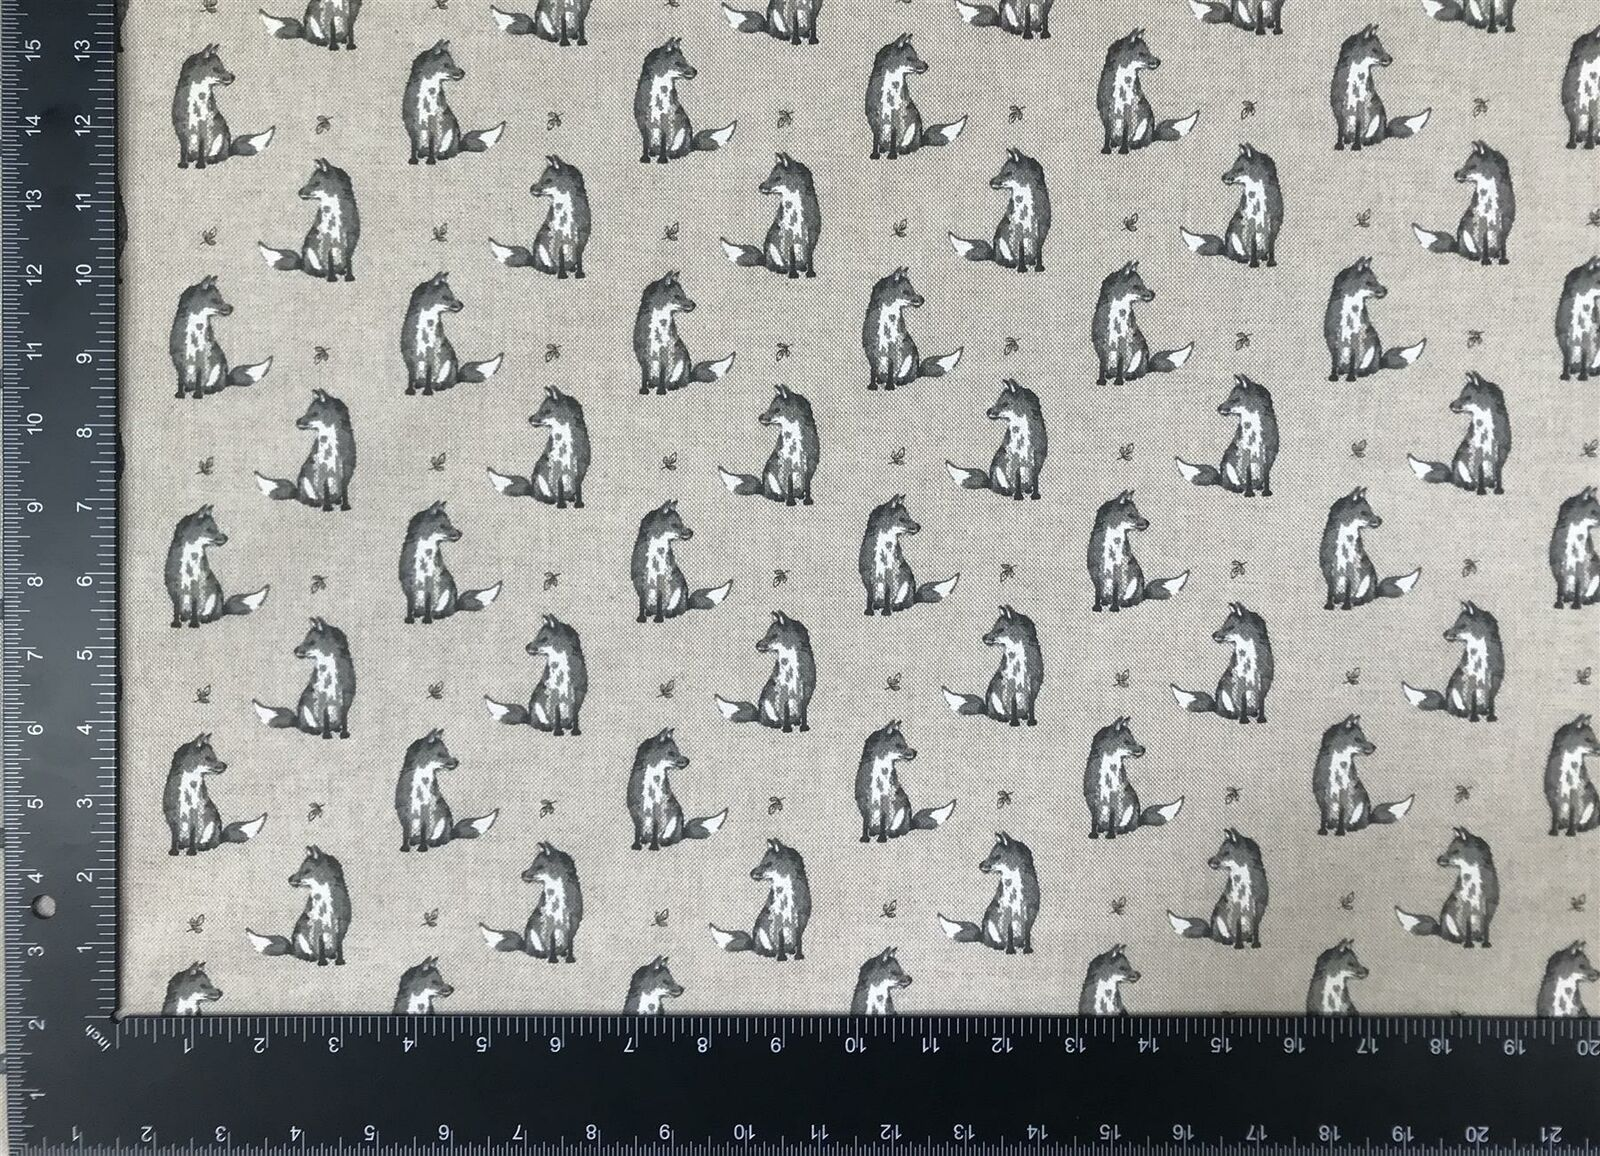 Vintage Fox Grey Linen Look High Quality Fabric Material 3 Sizes